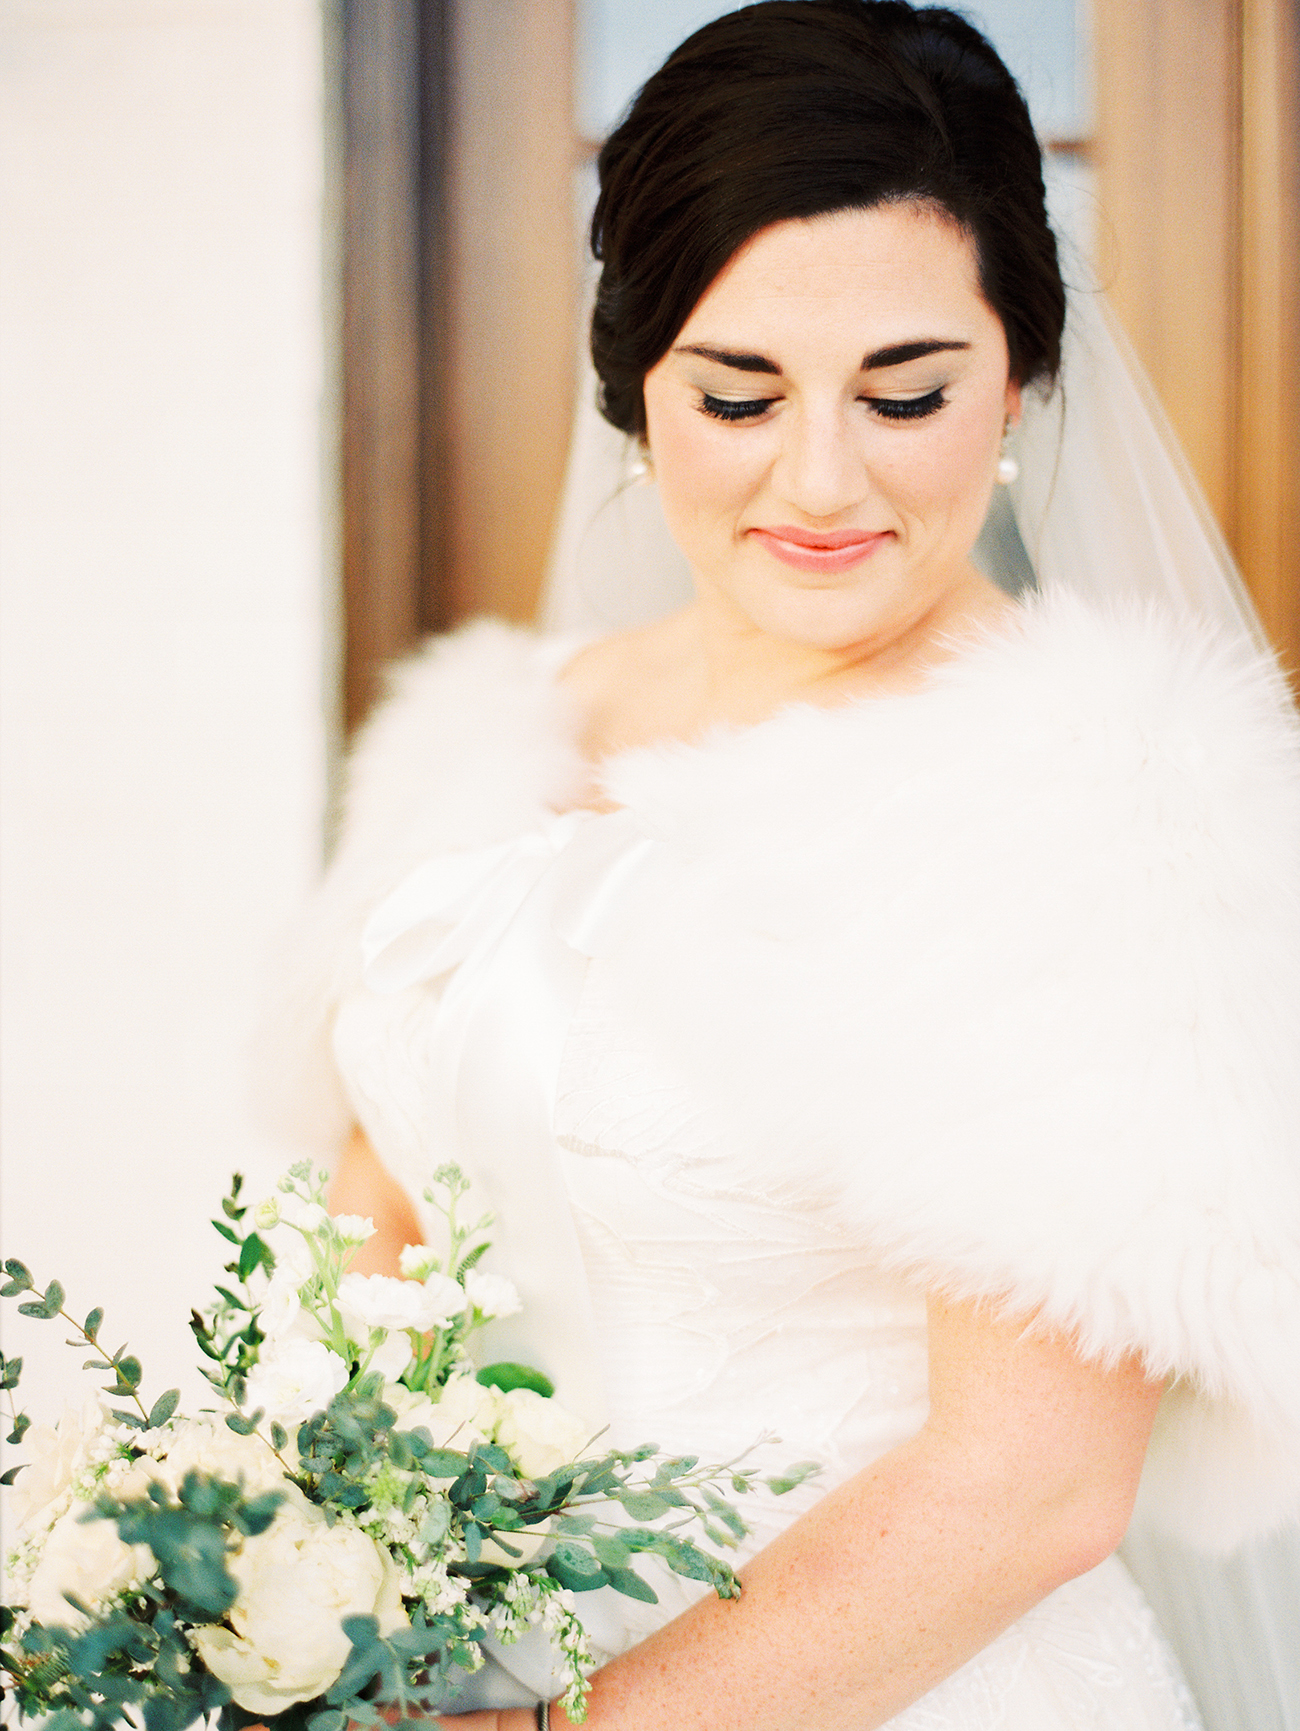 nrp-nancy-ashleydavisbridals-2010